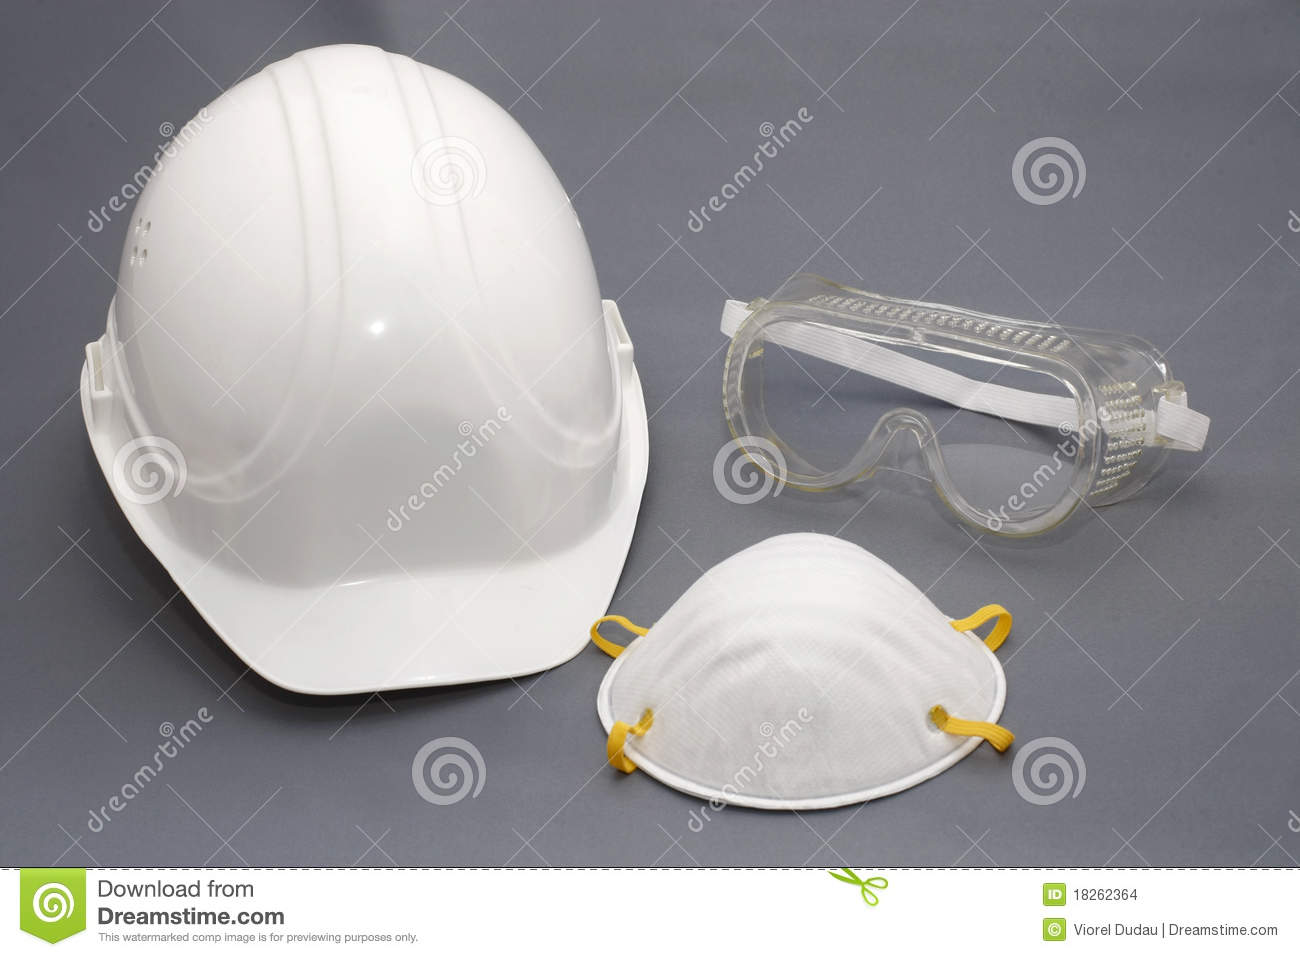 Hard Hat And Safety Protection Equipment Stock Photo